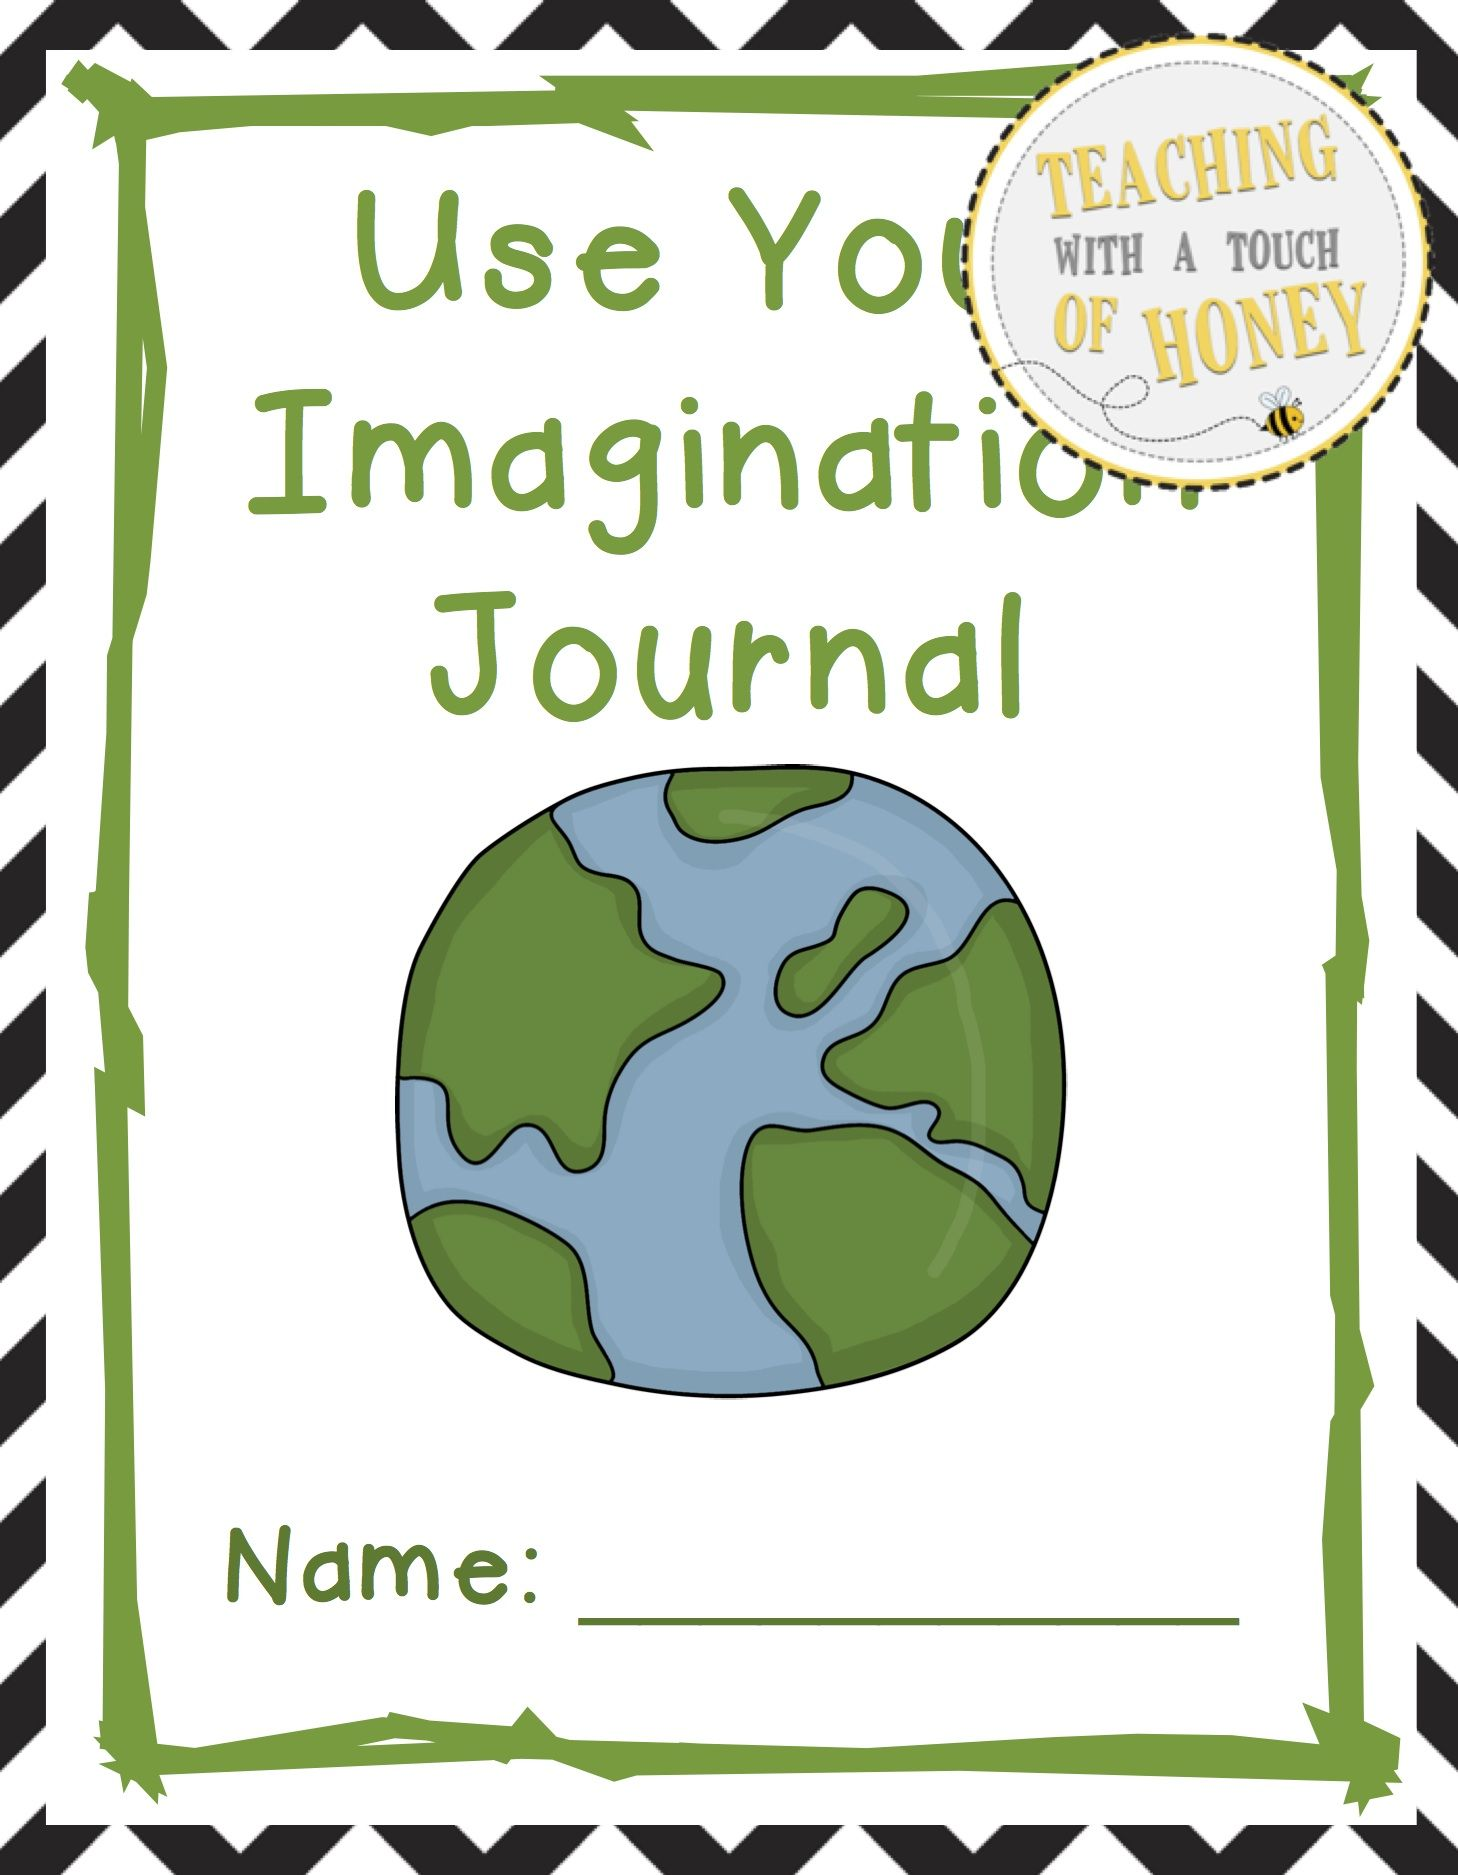 $ Need ideas to get your students writing? Promote writing with these journal writing prompts that encourage students to use their imagination. These writing prompts are aligned with the COMMON CORE standards.